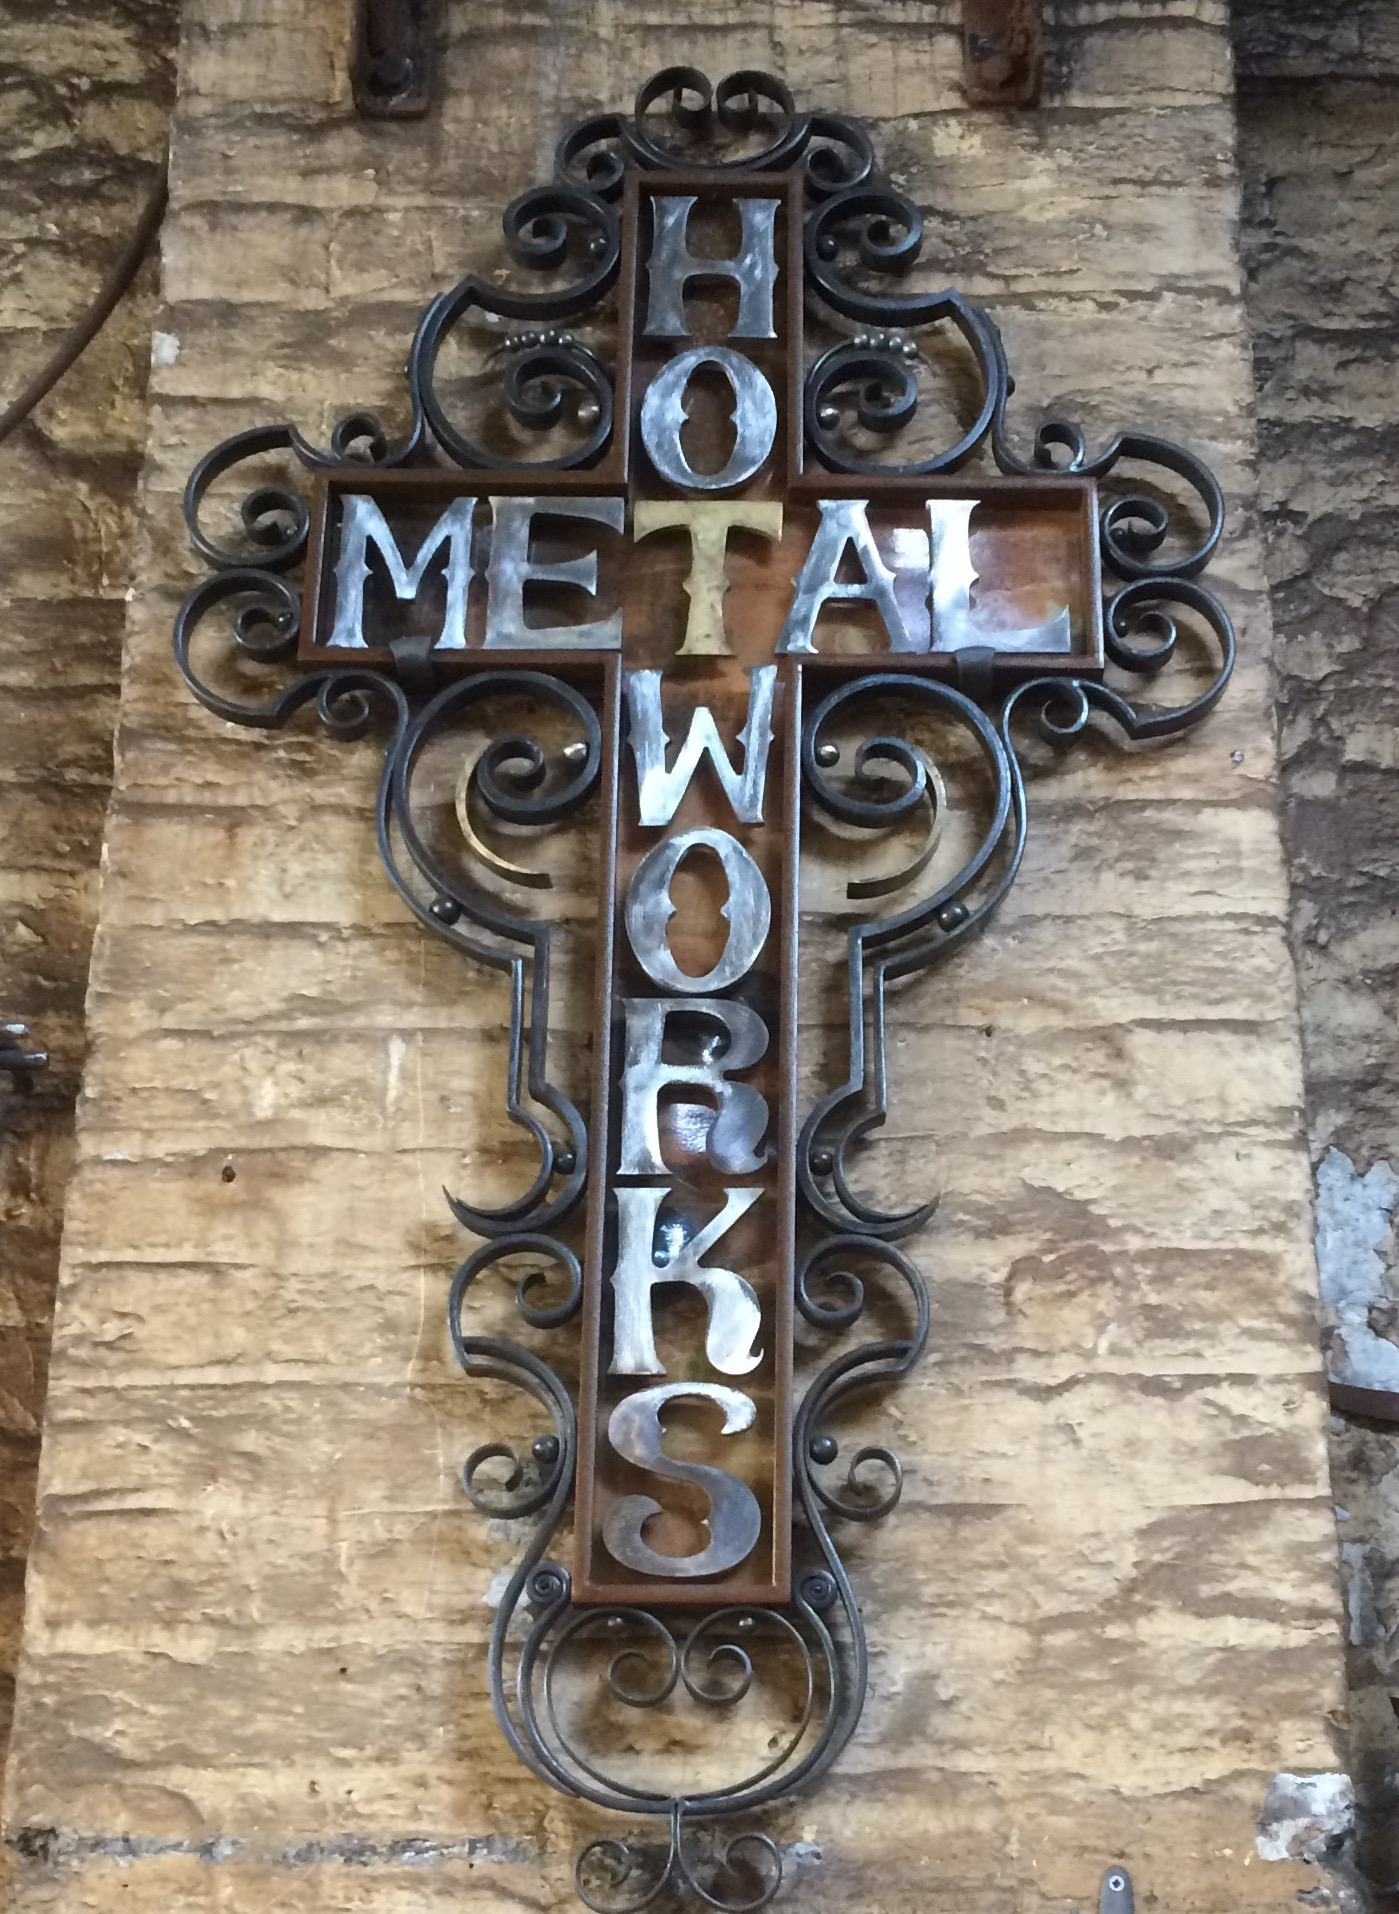 Hot-Metal-Works-London-Artistic-Blacksmith.JPG